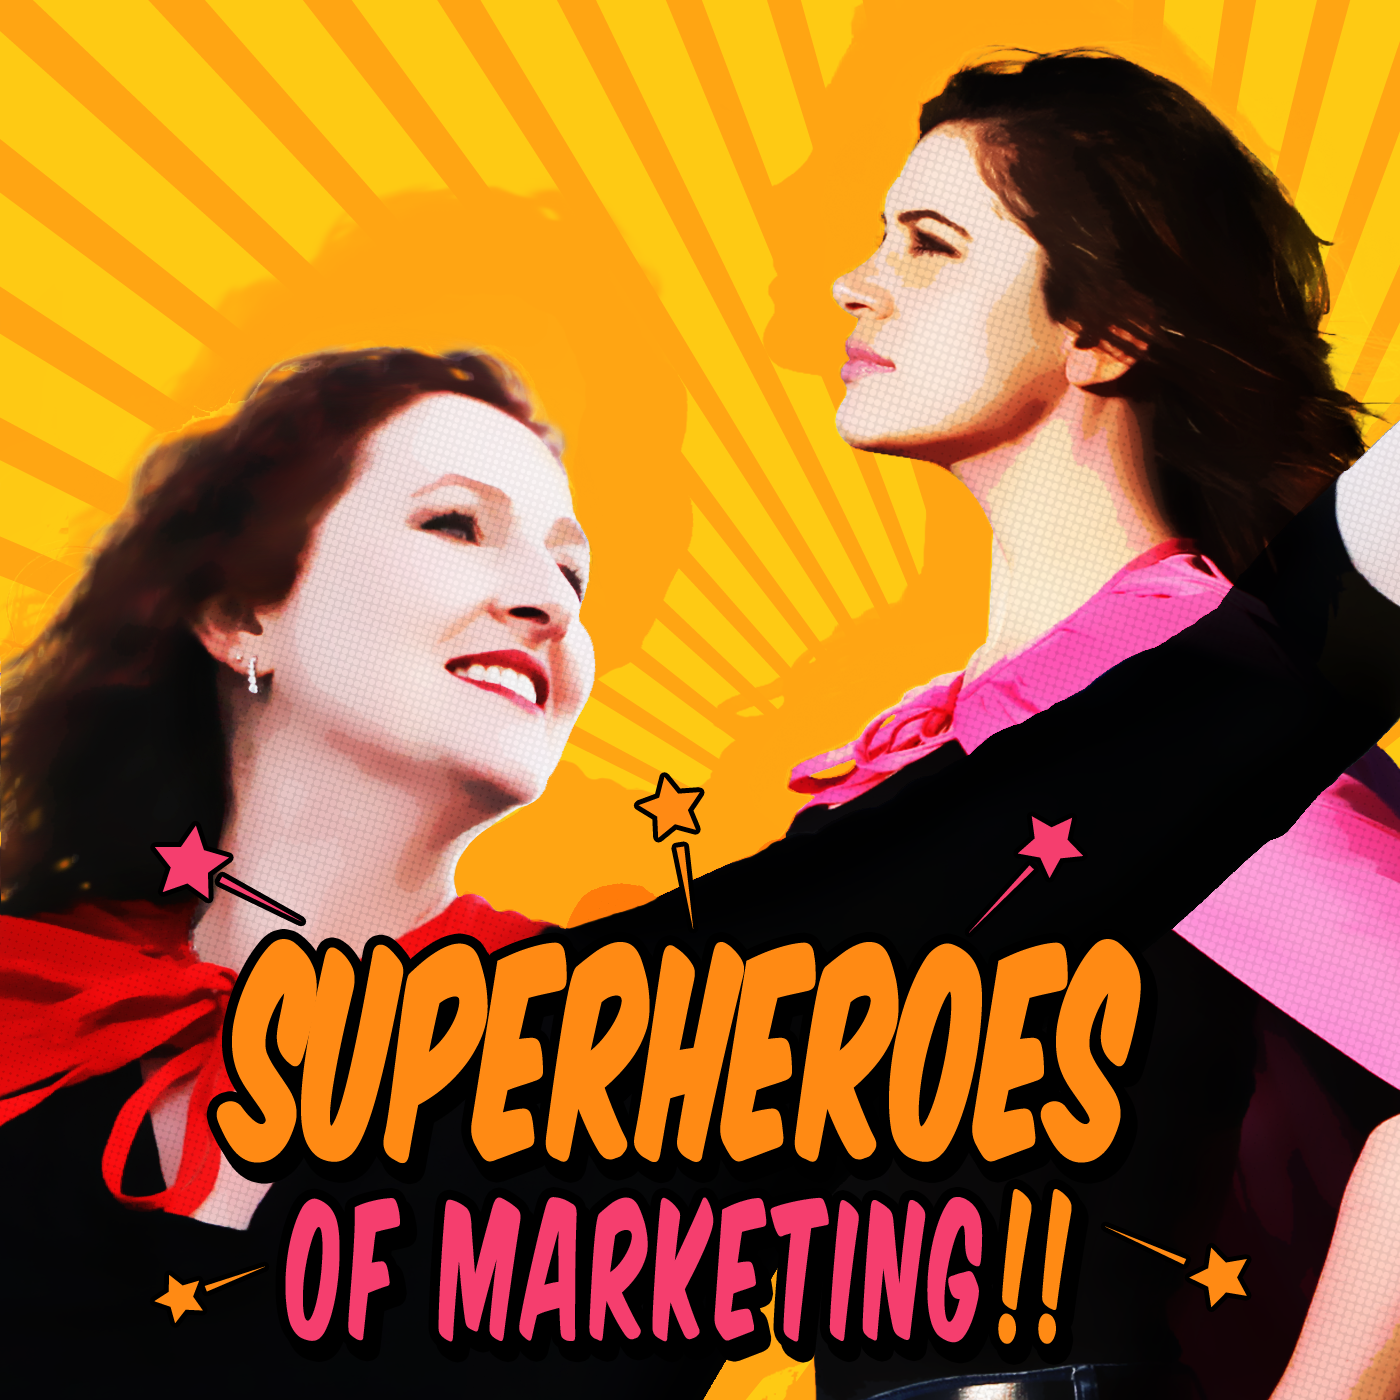 The Superheroes of Marketing Podcast | Content Marketing | Lead Generation | Social Media Marketing